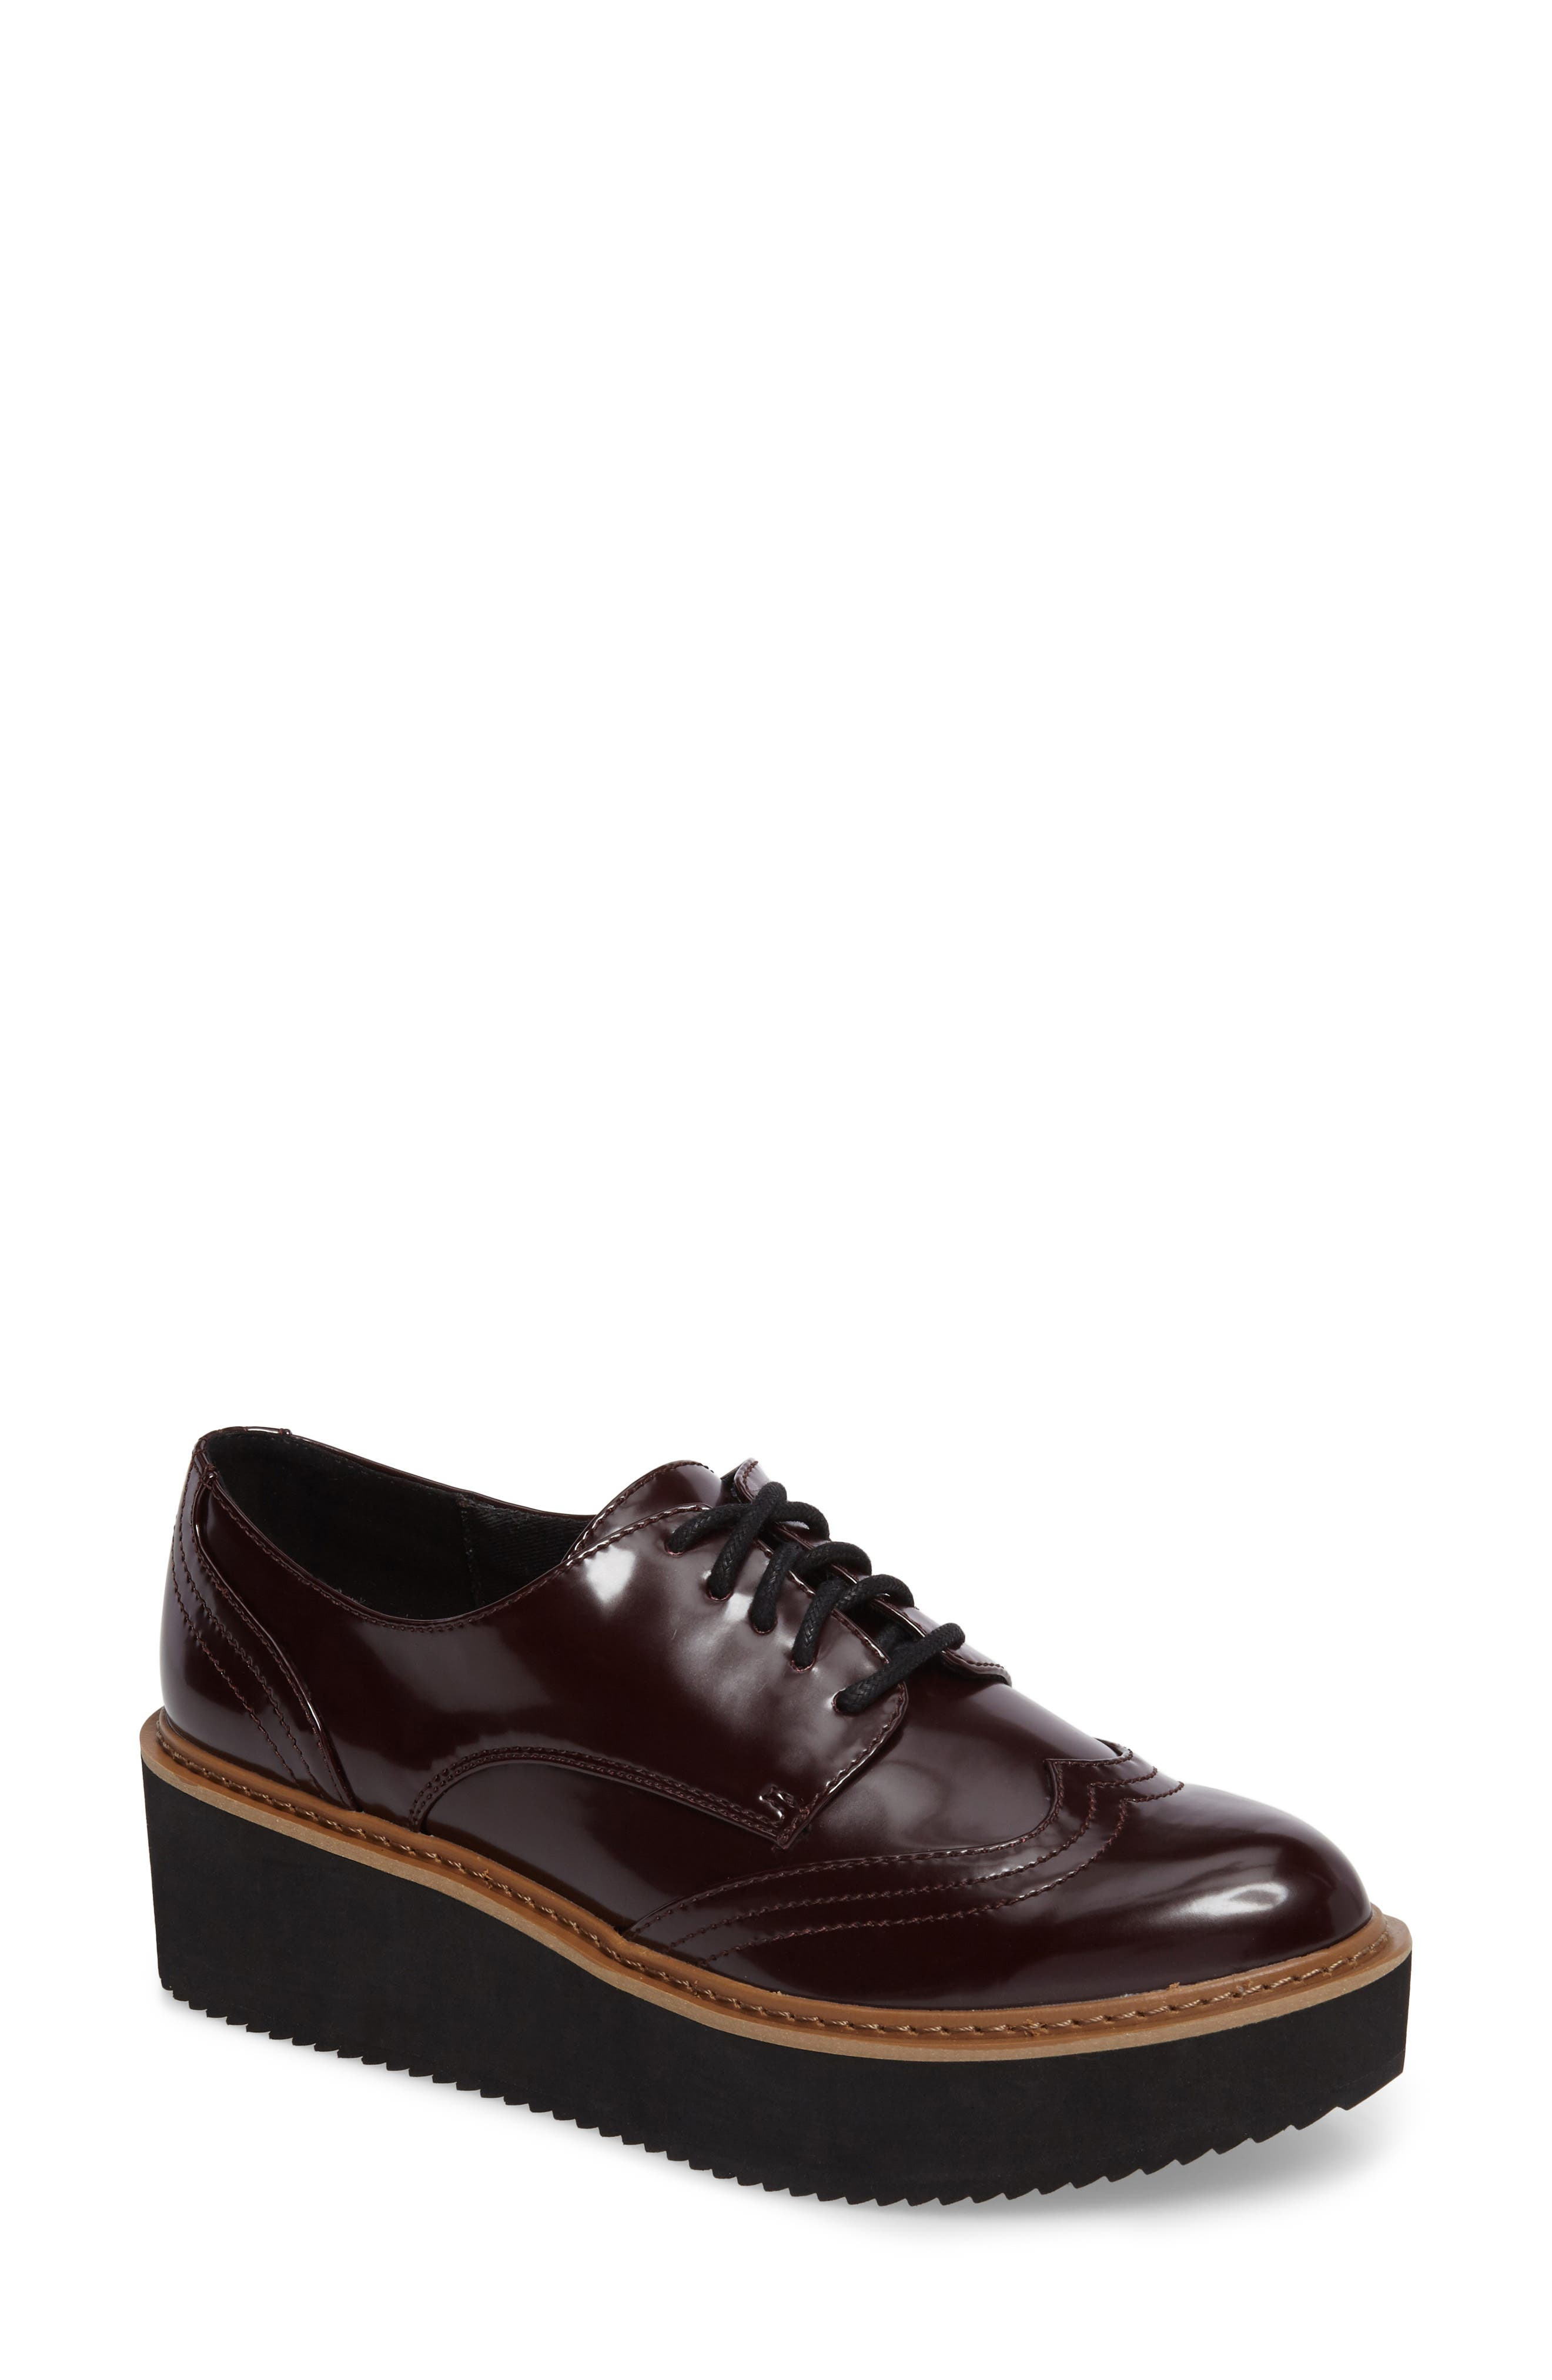 Lydia Oxford,                         Main,                         color, Burgundy Patent